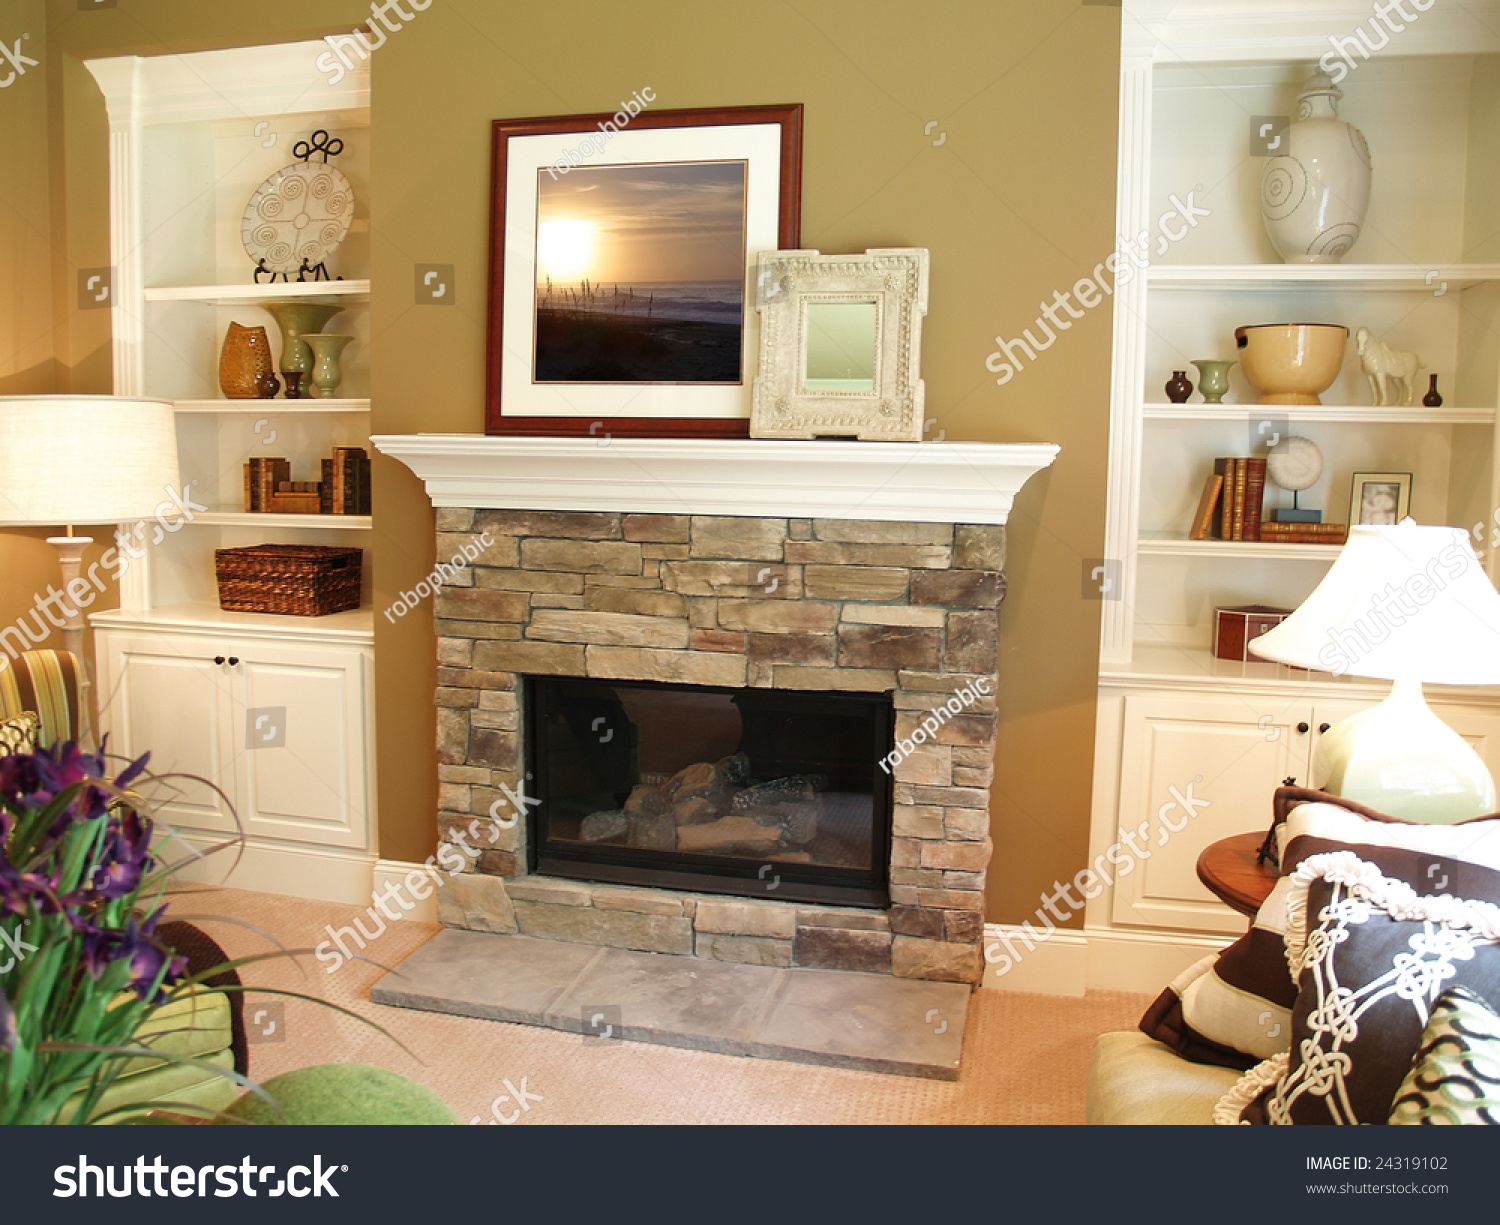 Diy Built In Bookcase With Fireplace Add Mantel Over Fireplace And Put Tv There Instead Home